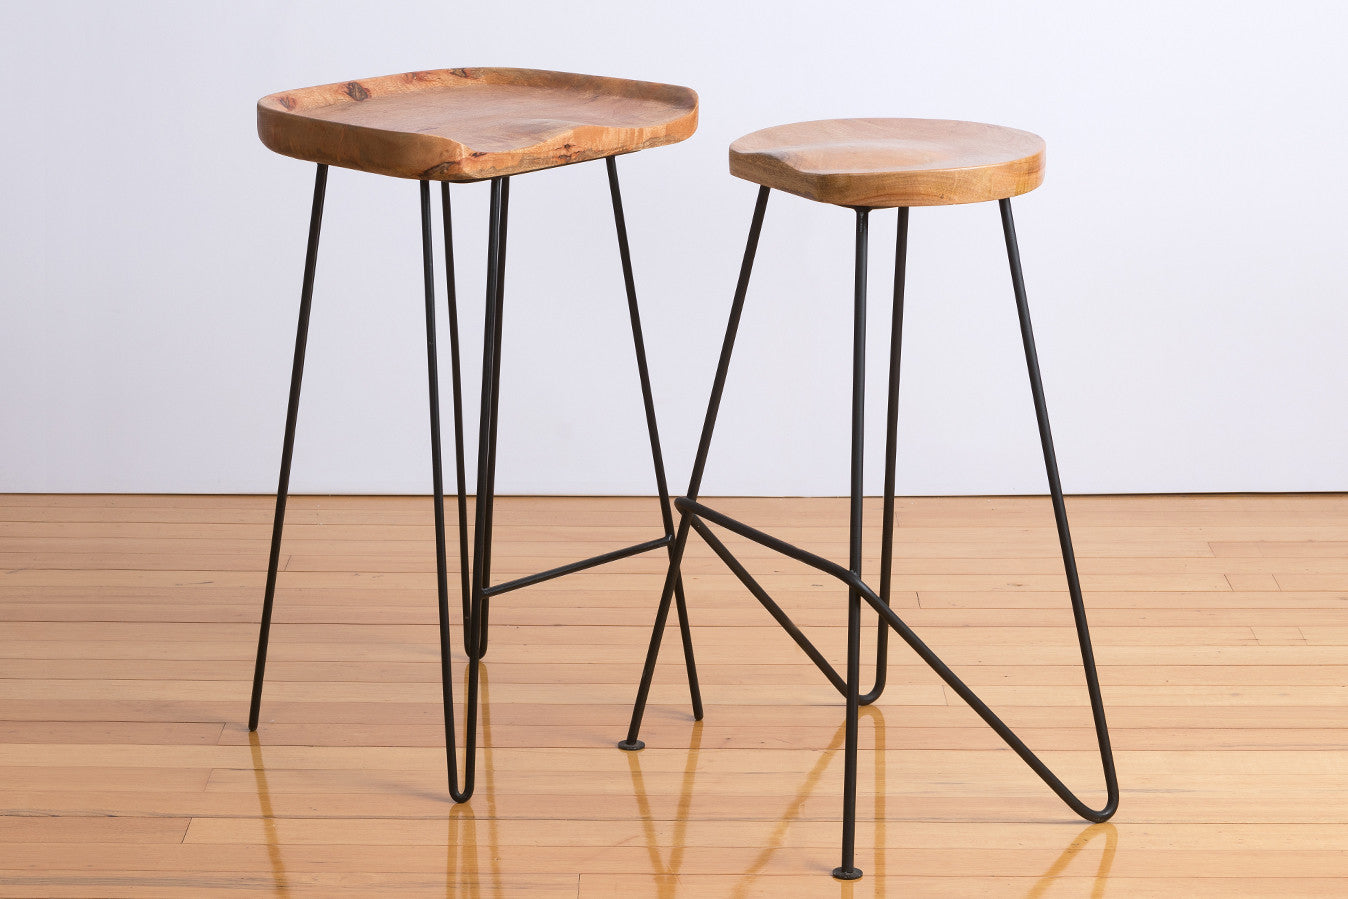 industry powder coated steel iron base w solid timber seat bar